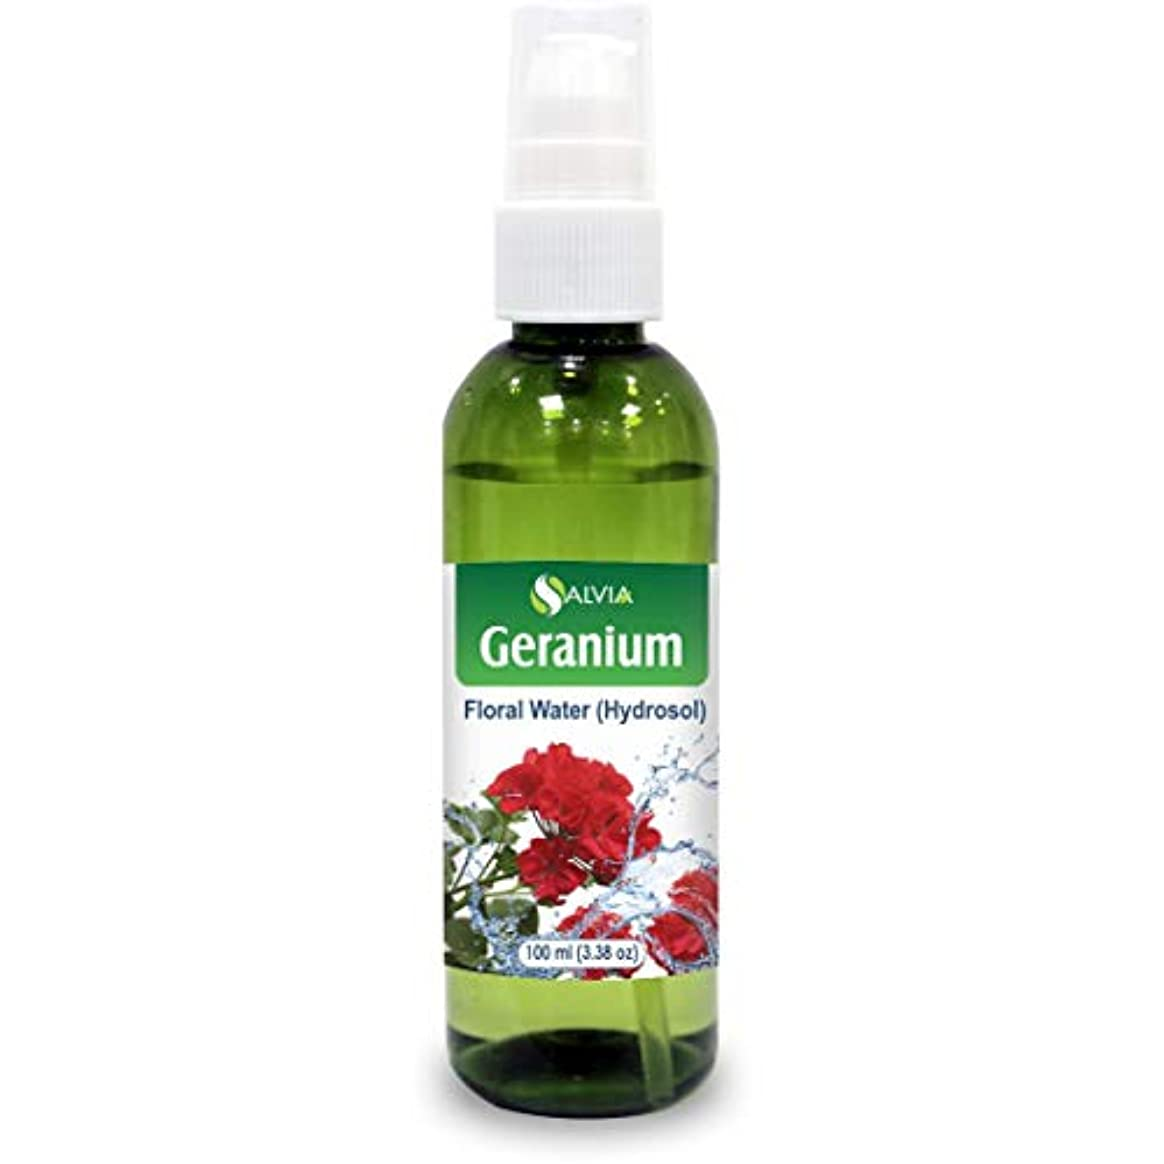 平日大脳航海Geranium Floral Water 100ml (Hydrosol) 100% Pure And Natural